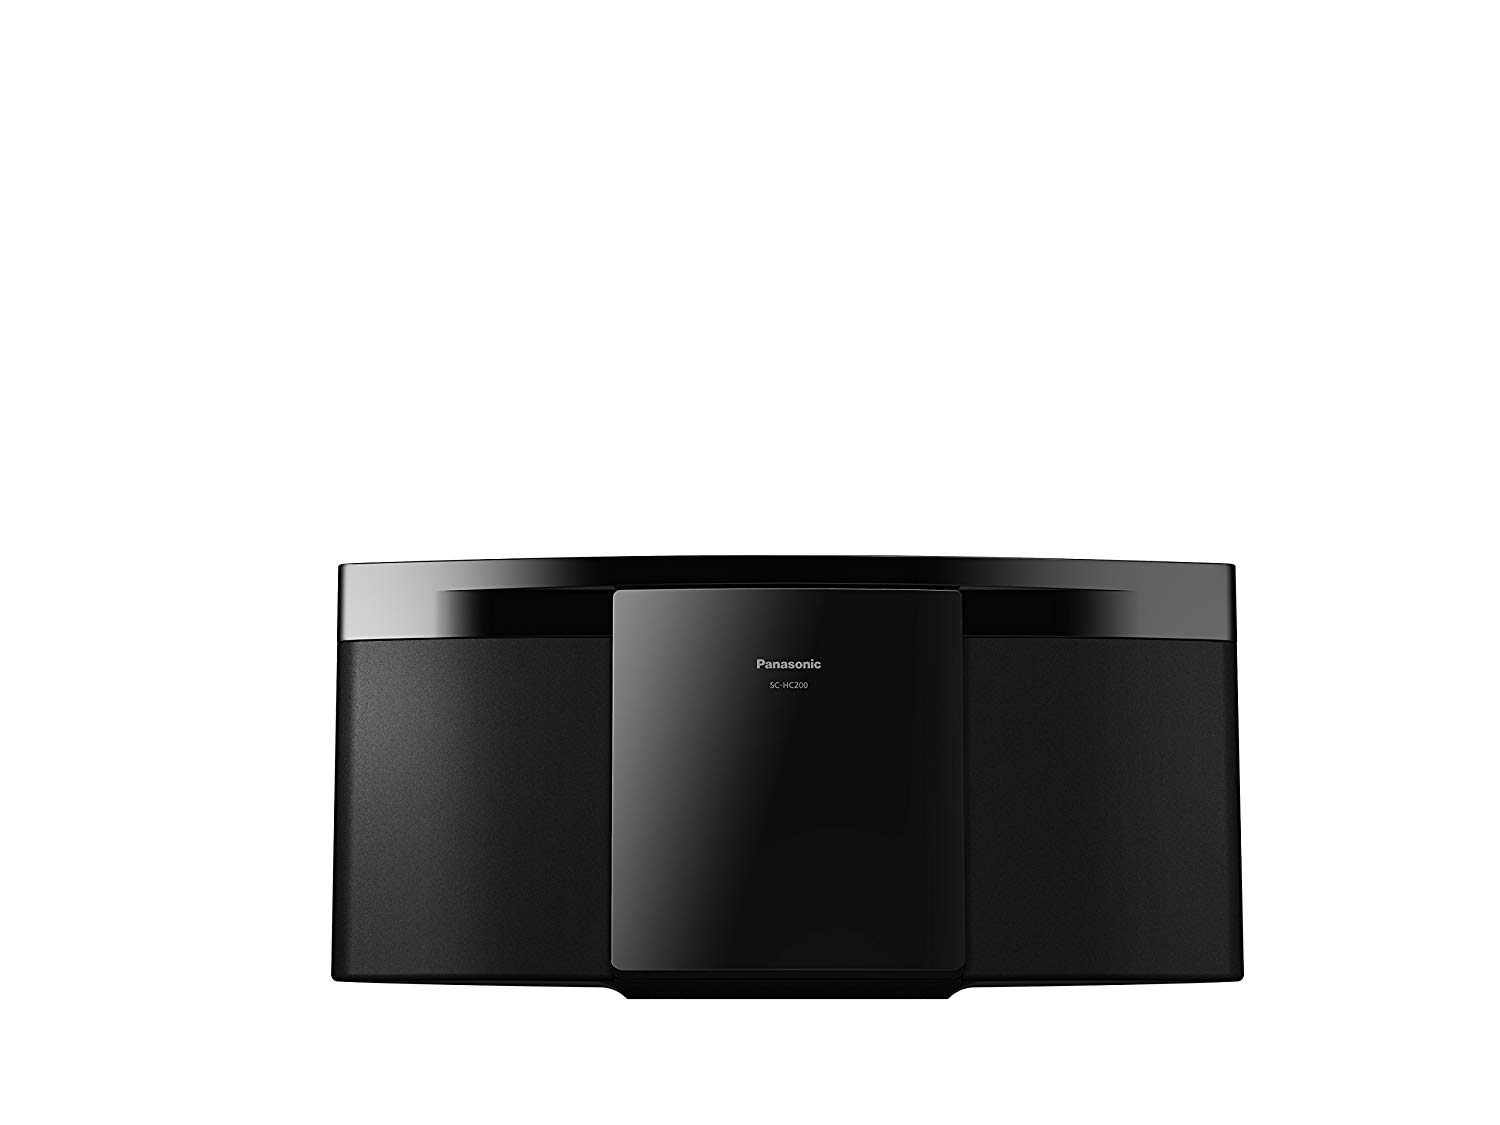 Panasonic SC-HC200 Micro Hifi System (Black) for  £69.00